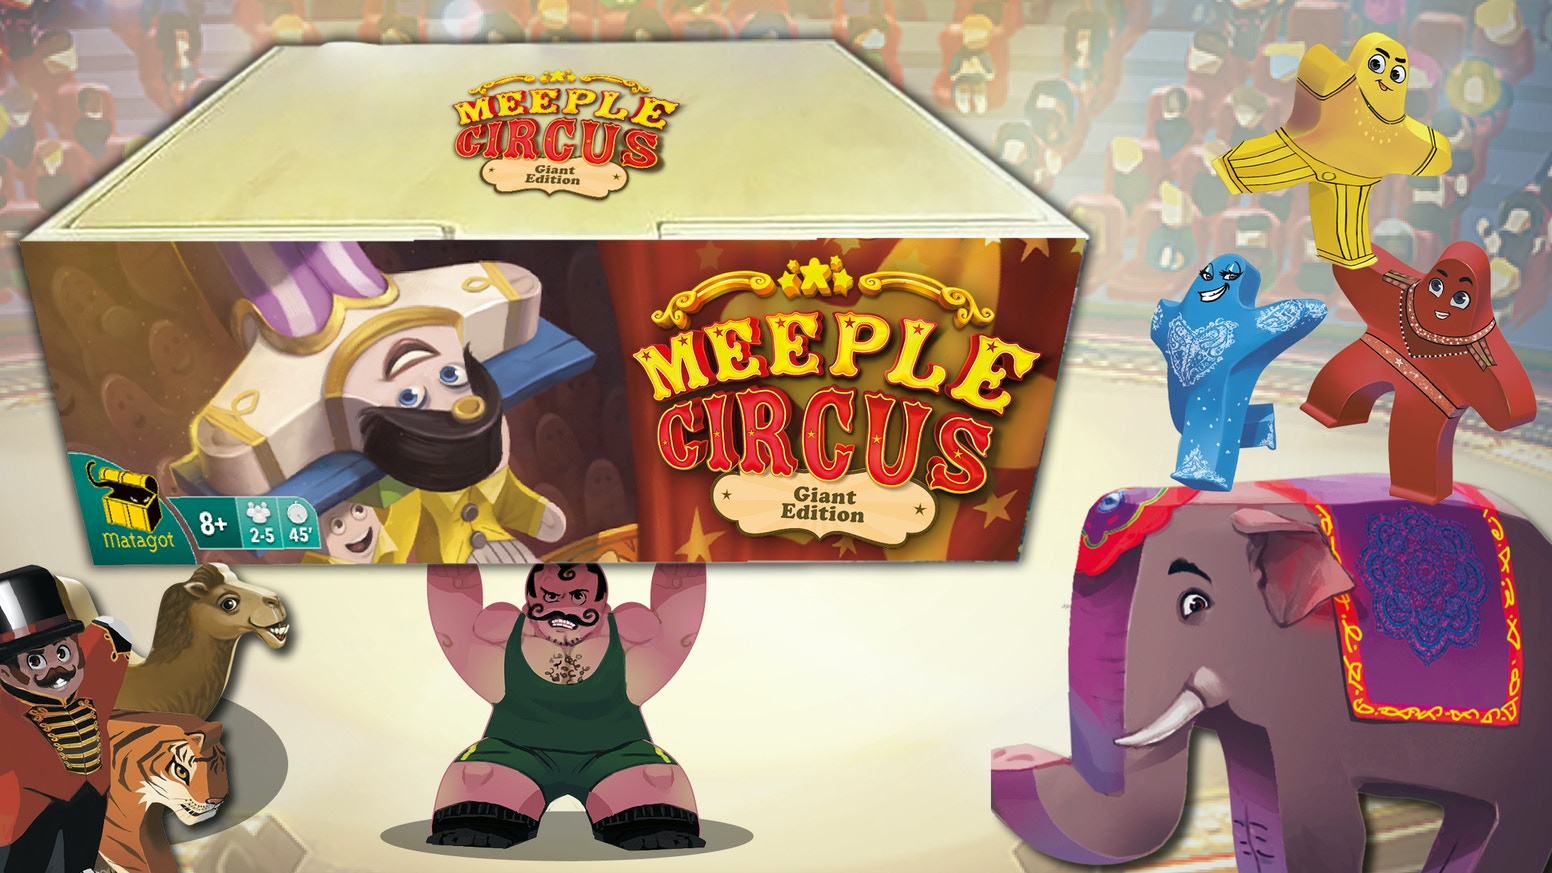 Run Away to the Circus! Assemble your acrobats, circus animals and guest stars into a show-stopping performance.